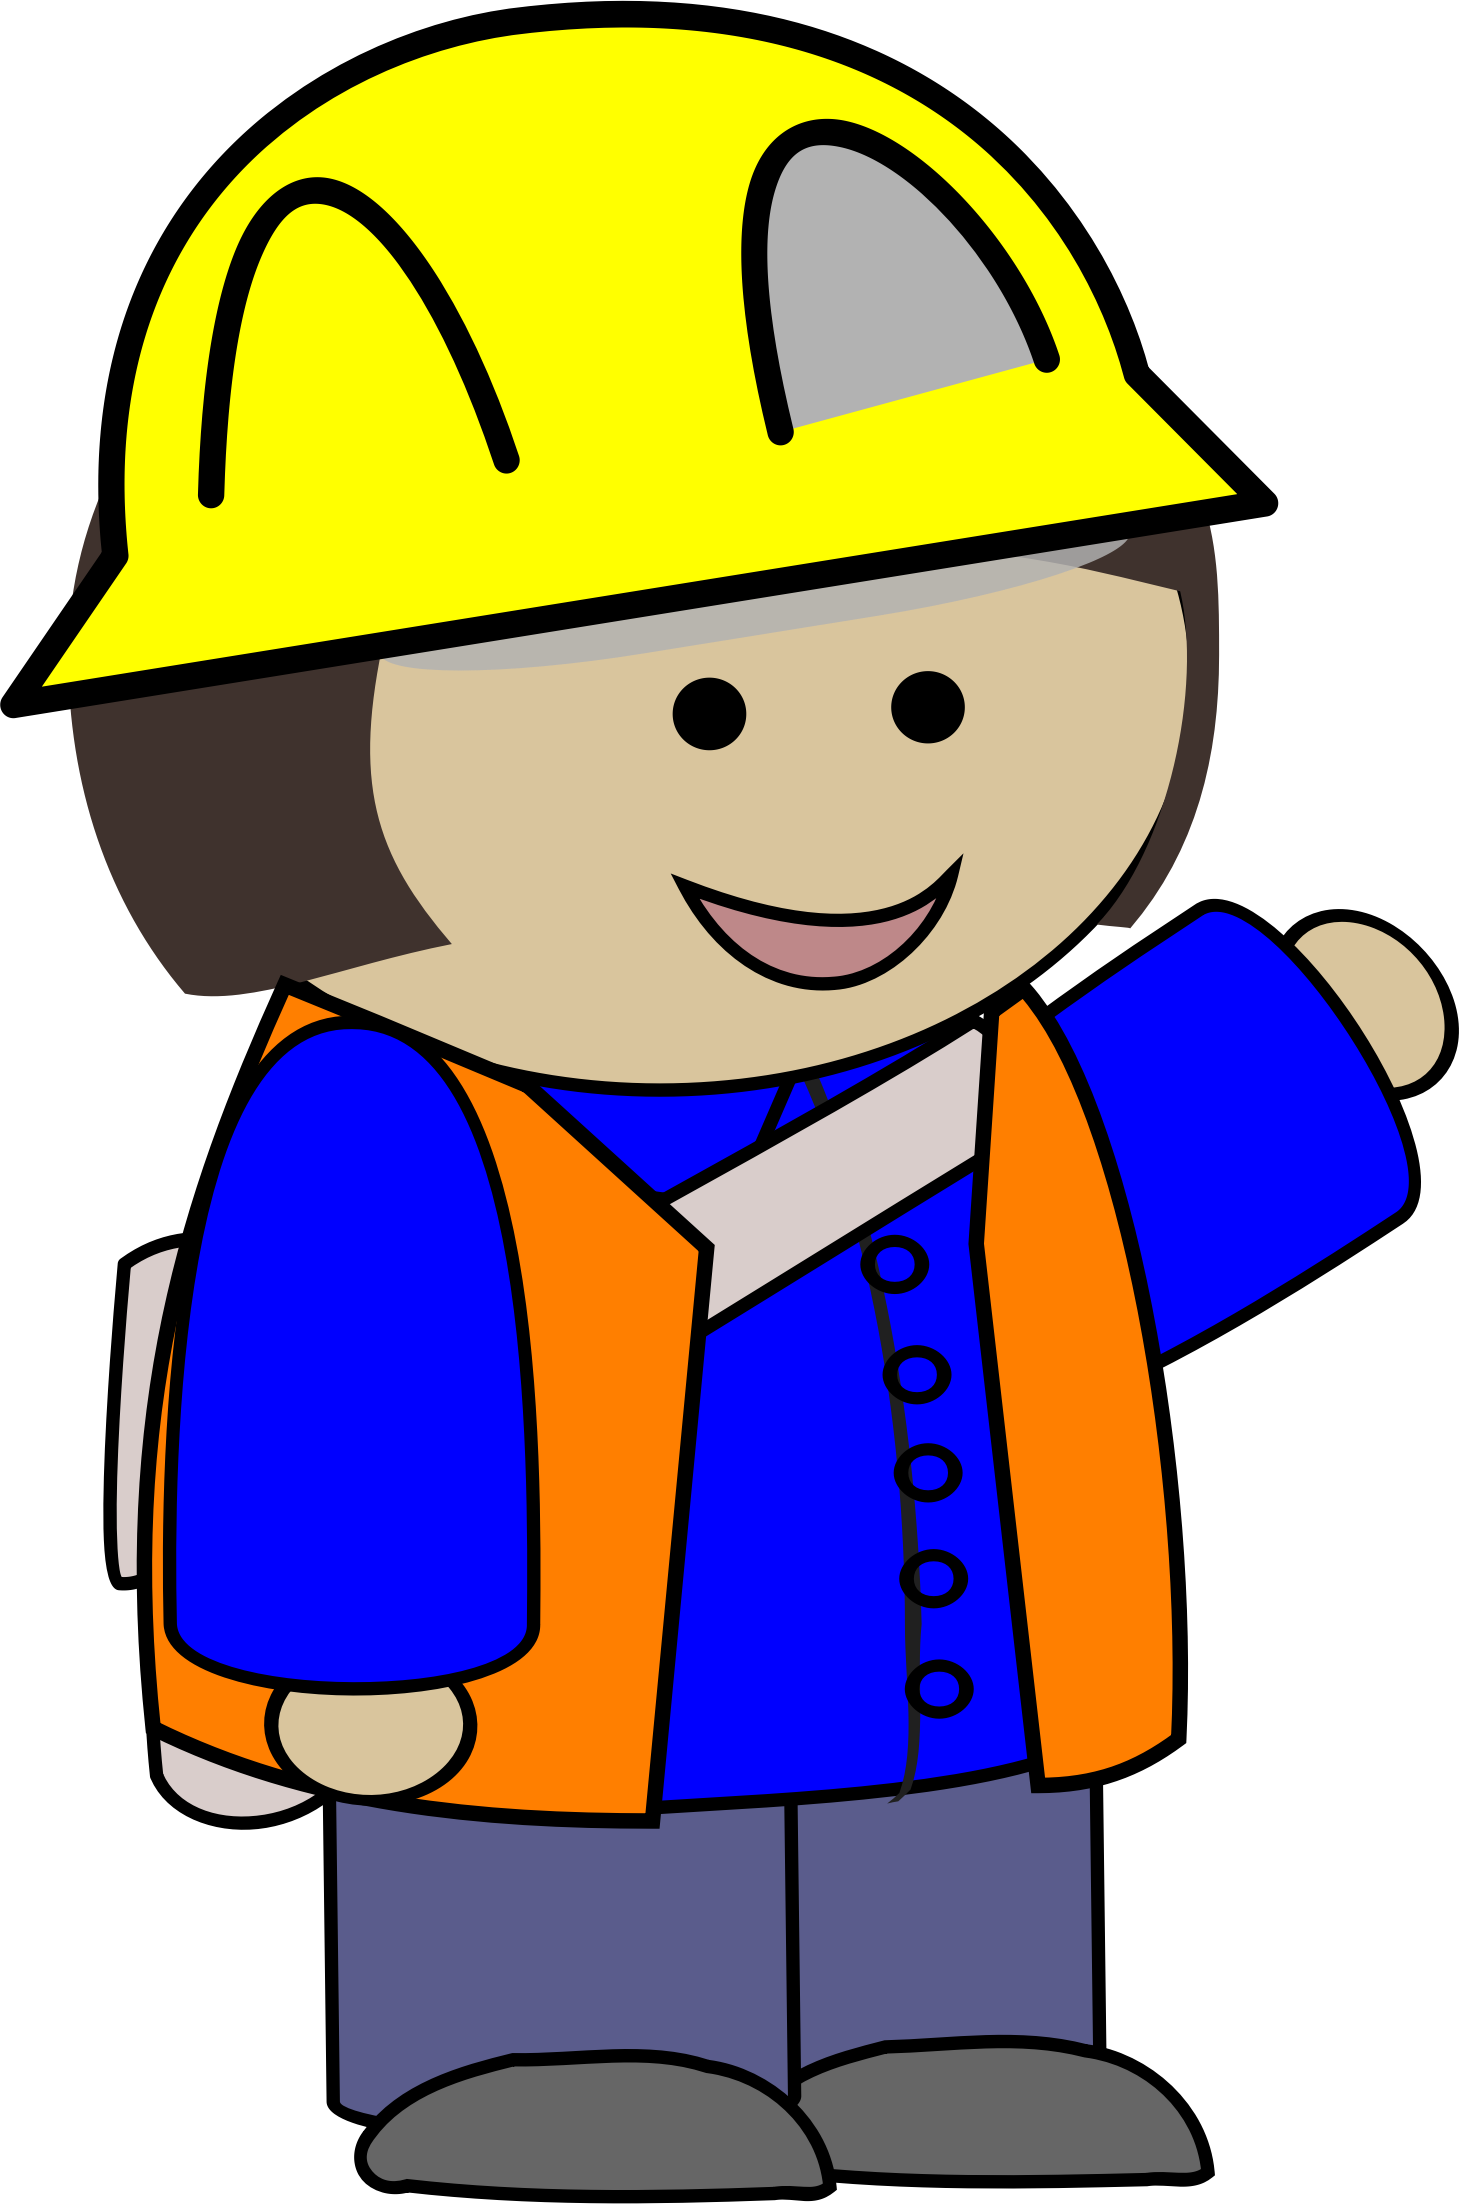 Girl clipart construction. Kid big image png